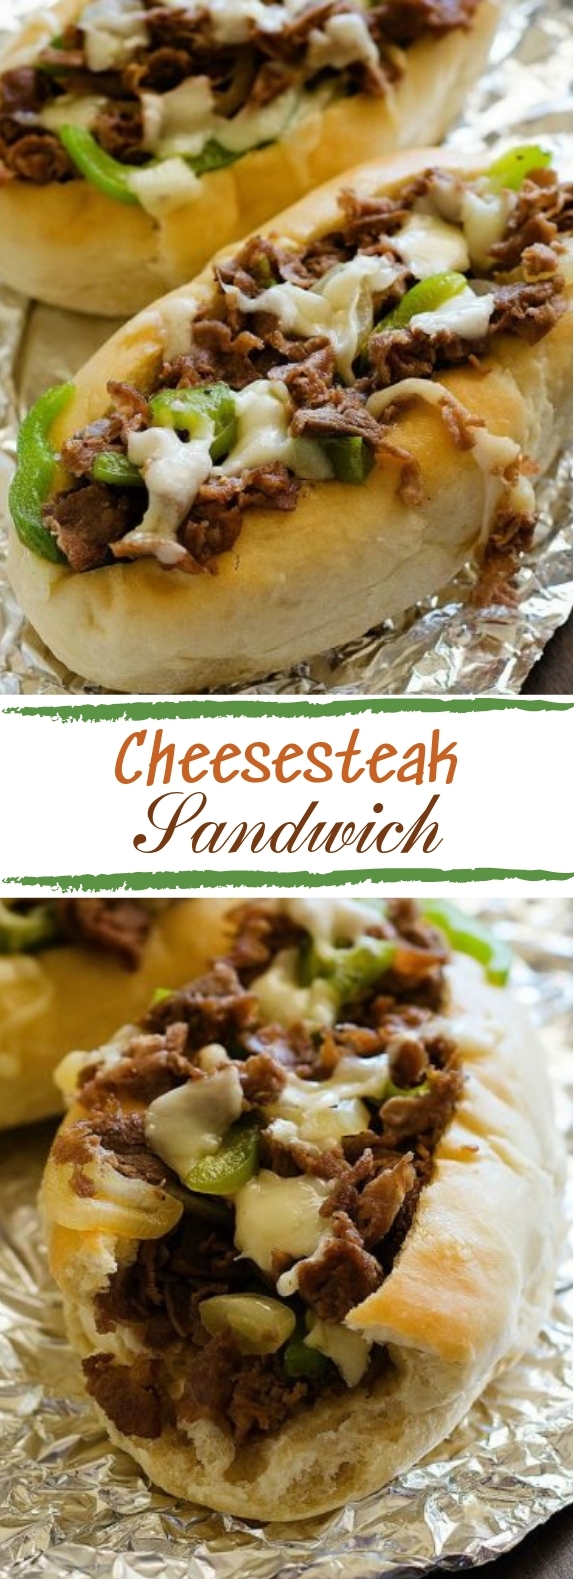 Cheesesteak Sandwiches #dinner #easymeal